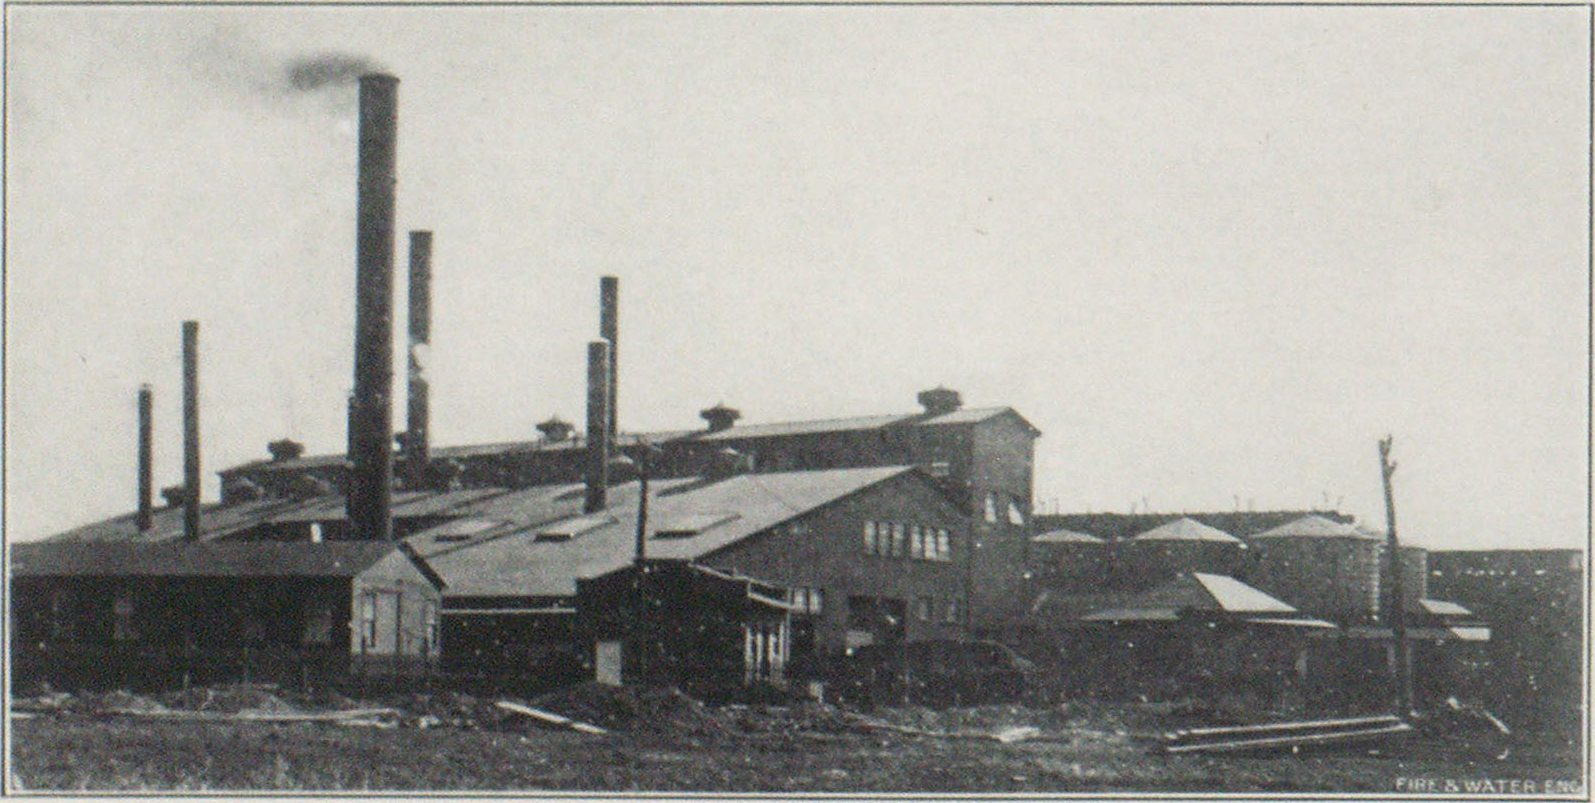 PART OF THE HOOKER ELECTRO-CHEMICAL COMPANY'S PLANT BEFORE THE FIRE.